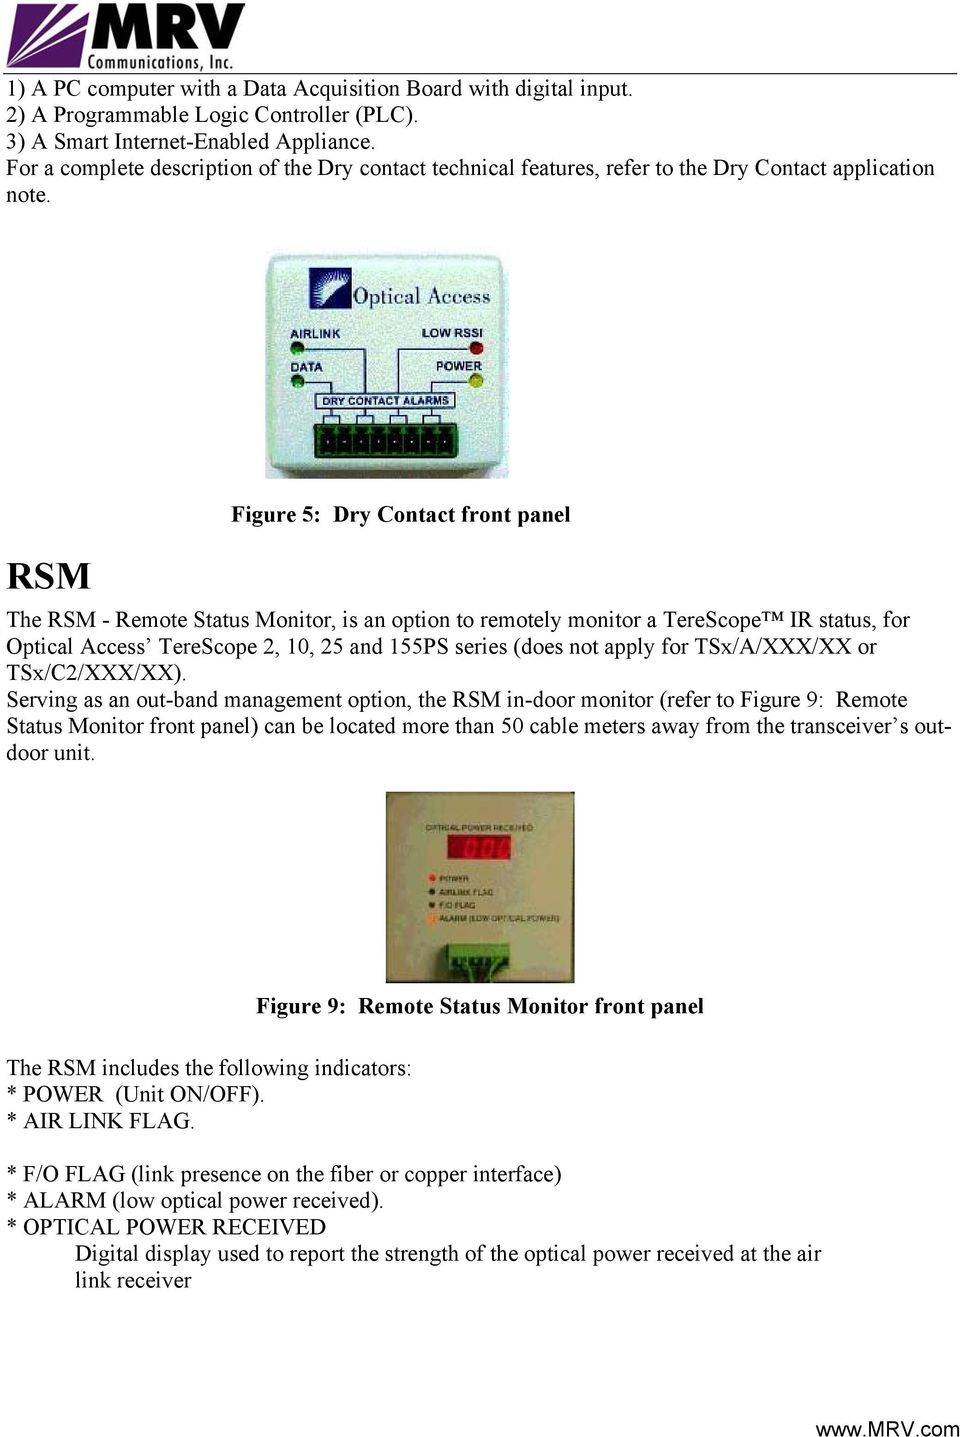 RSM Figure 5: Dry Contact front panel The RSM - Remote Status Monitor, is an option to remotely monitor a TereScope IR status, for Optical Access TereScope 2, 10, 25 and 155PS series (does not apply